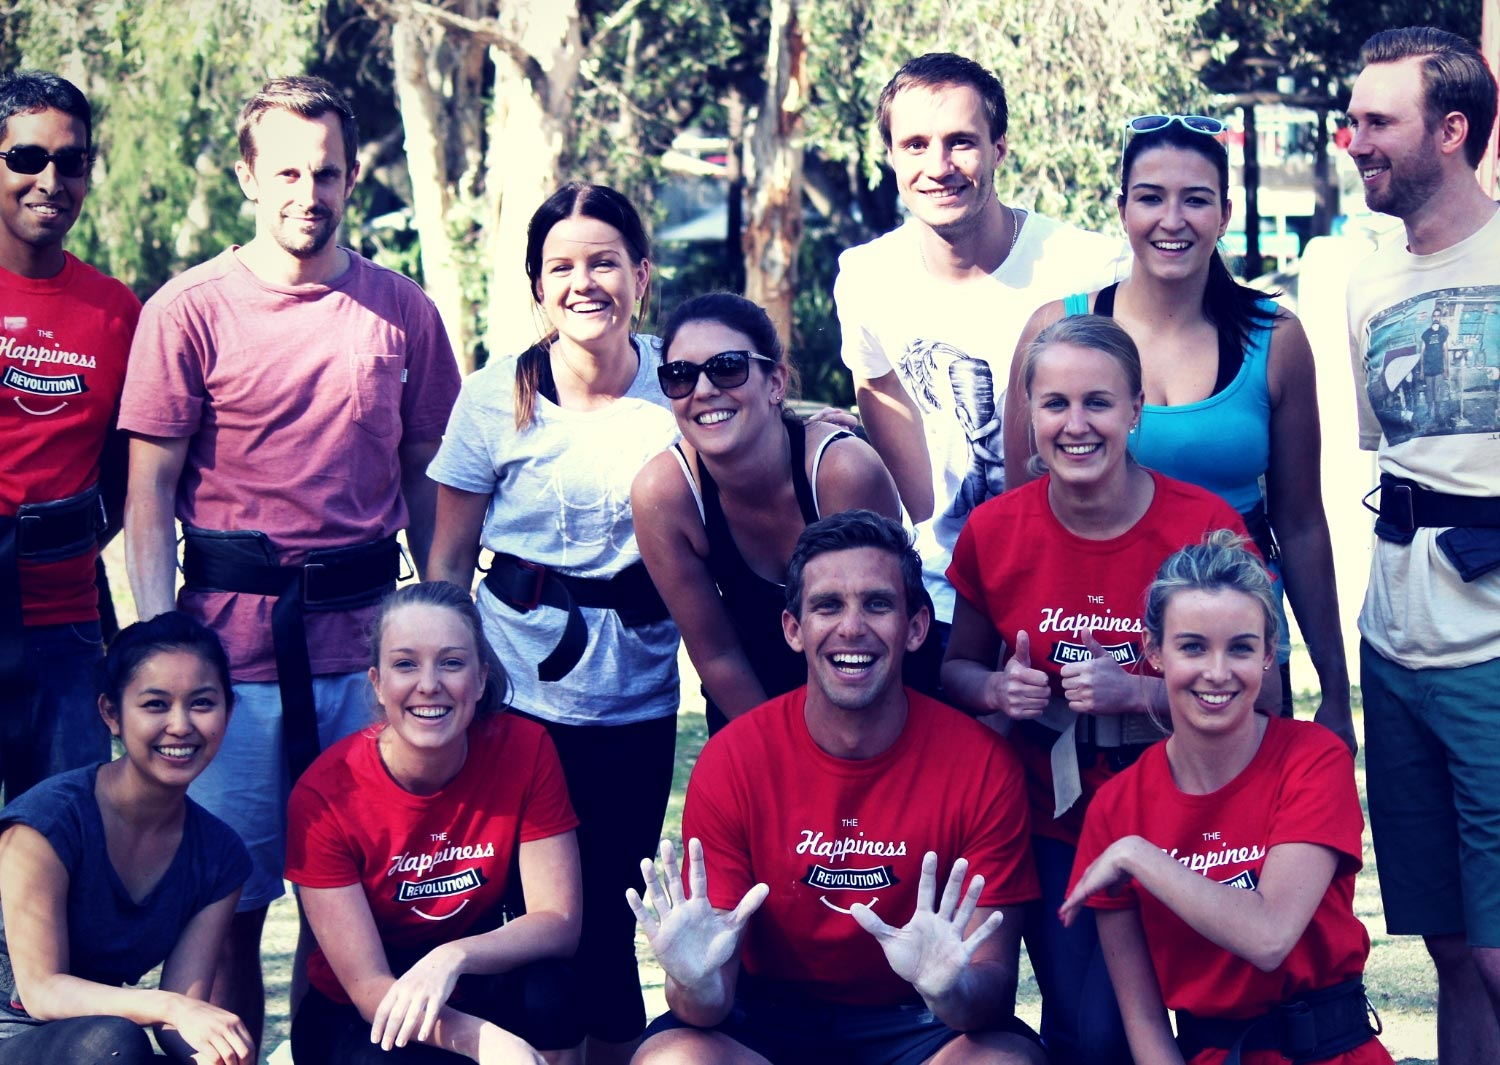 Group photo at Circus Arts Sydney - Corporate team building circus and flying trapeze